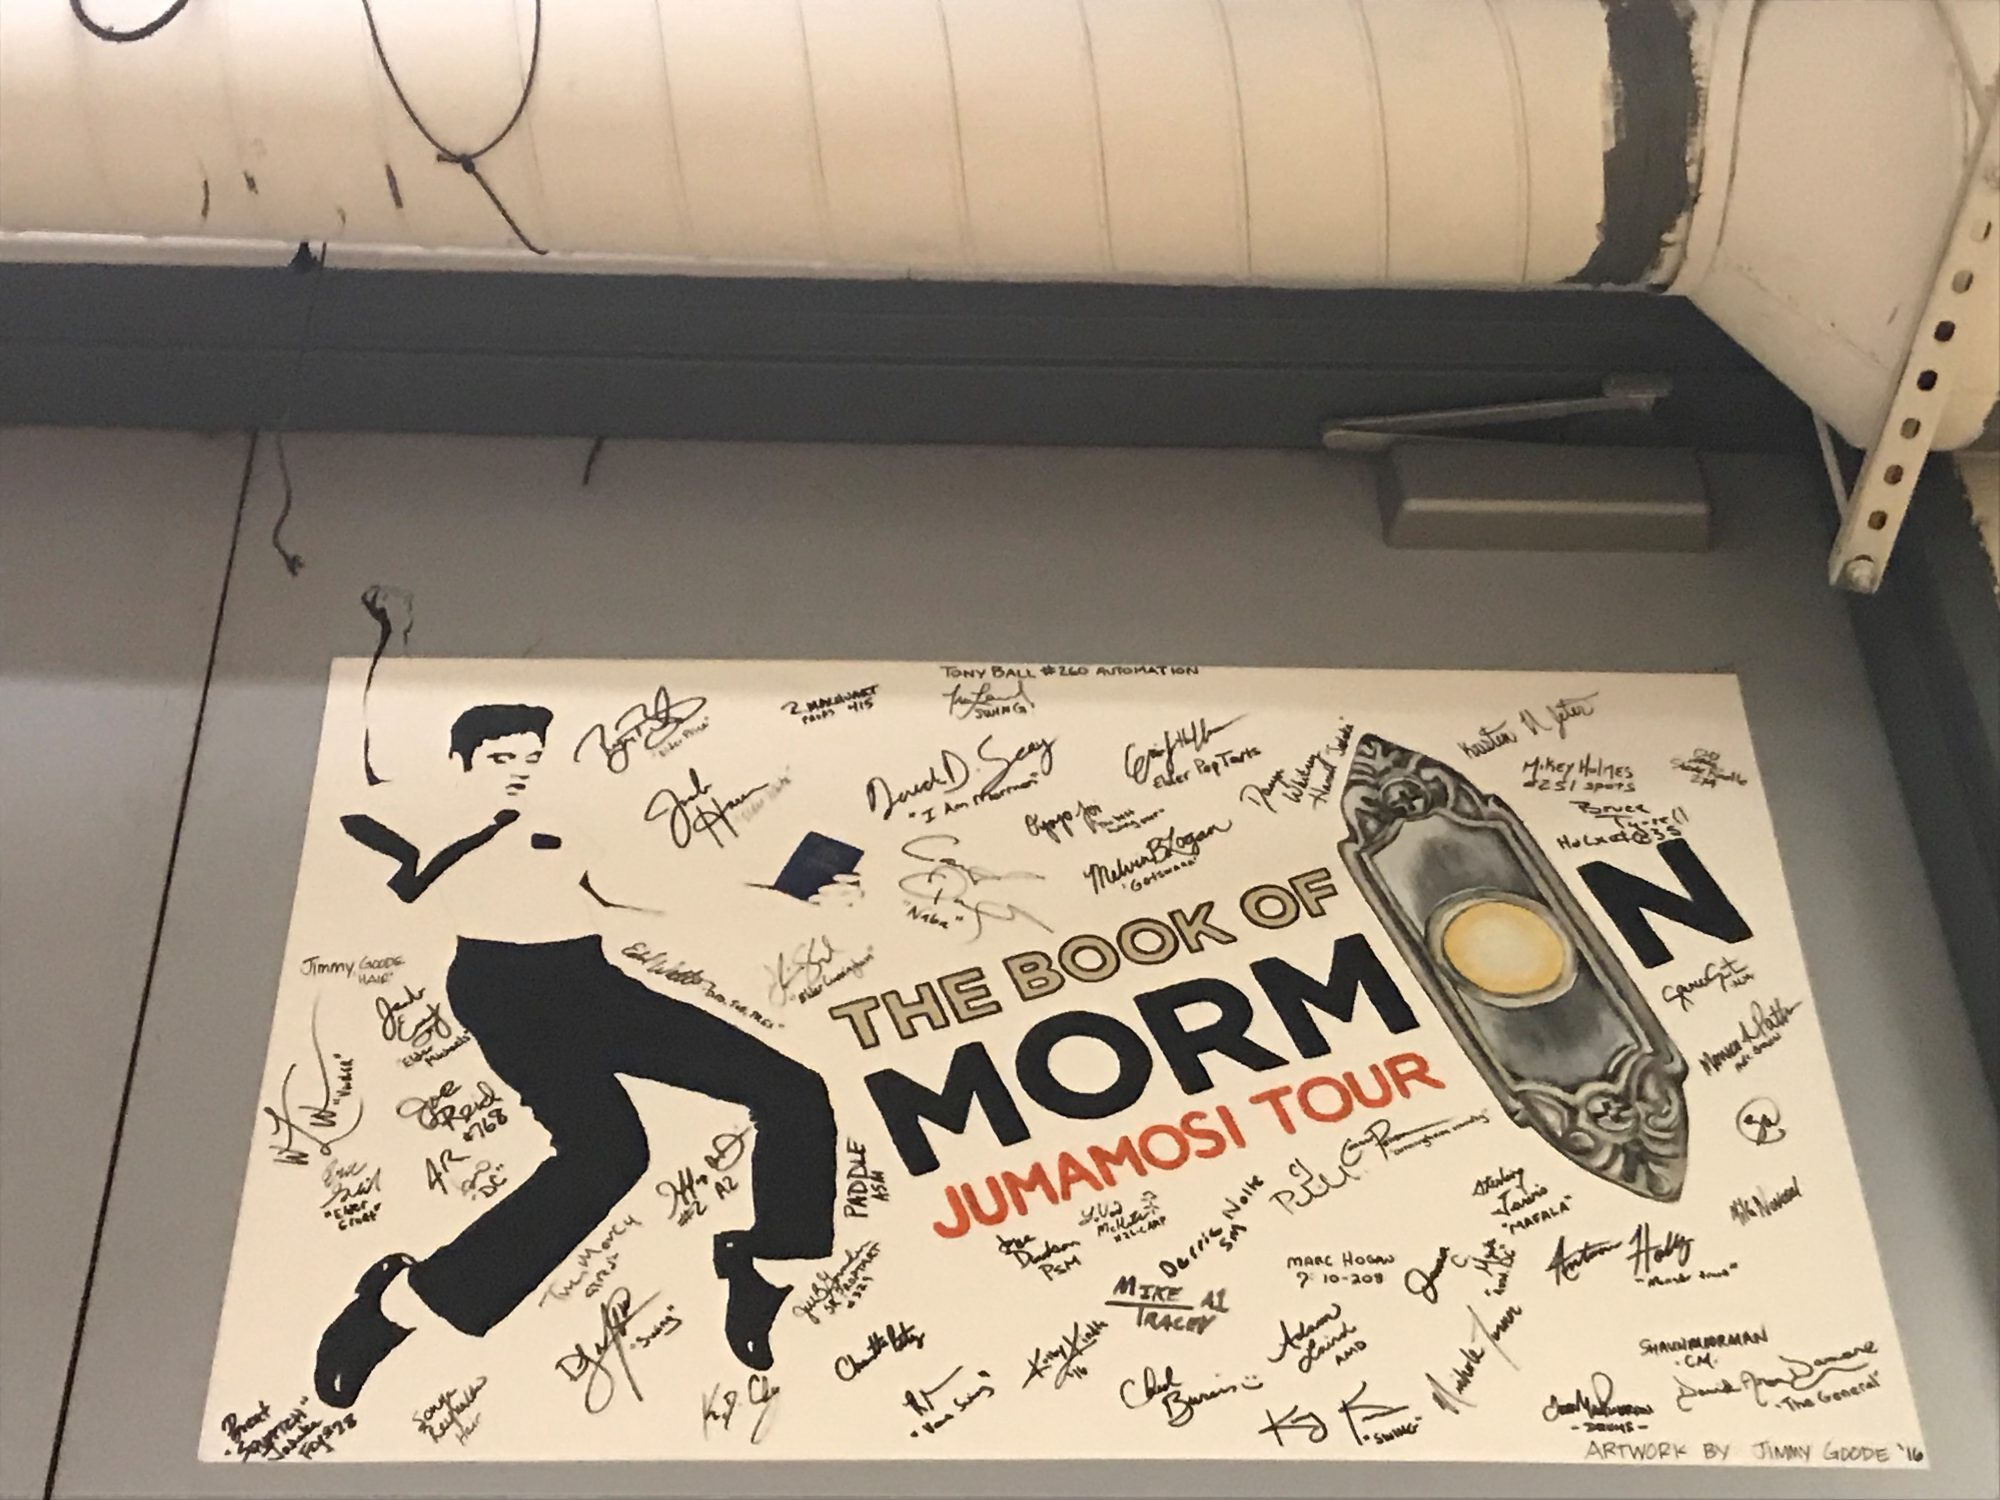 Elvis at the Orpheum Book of Mormon Mural